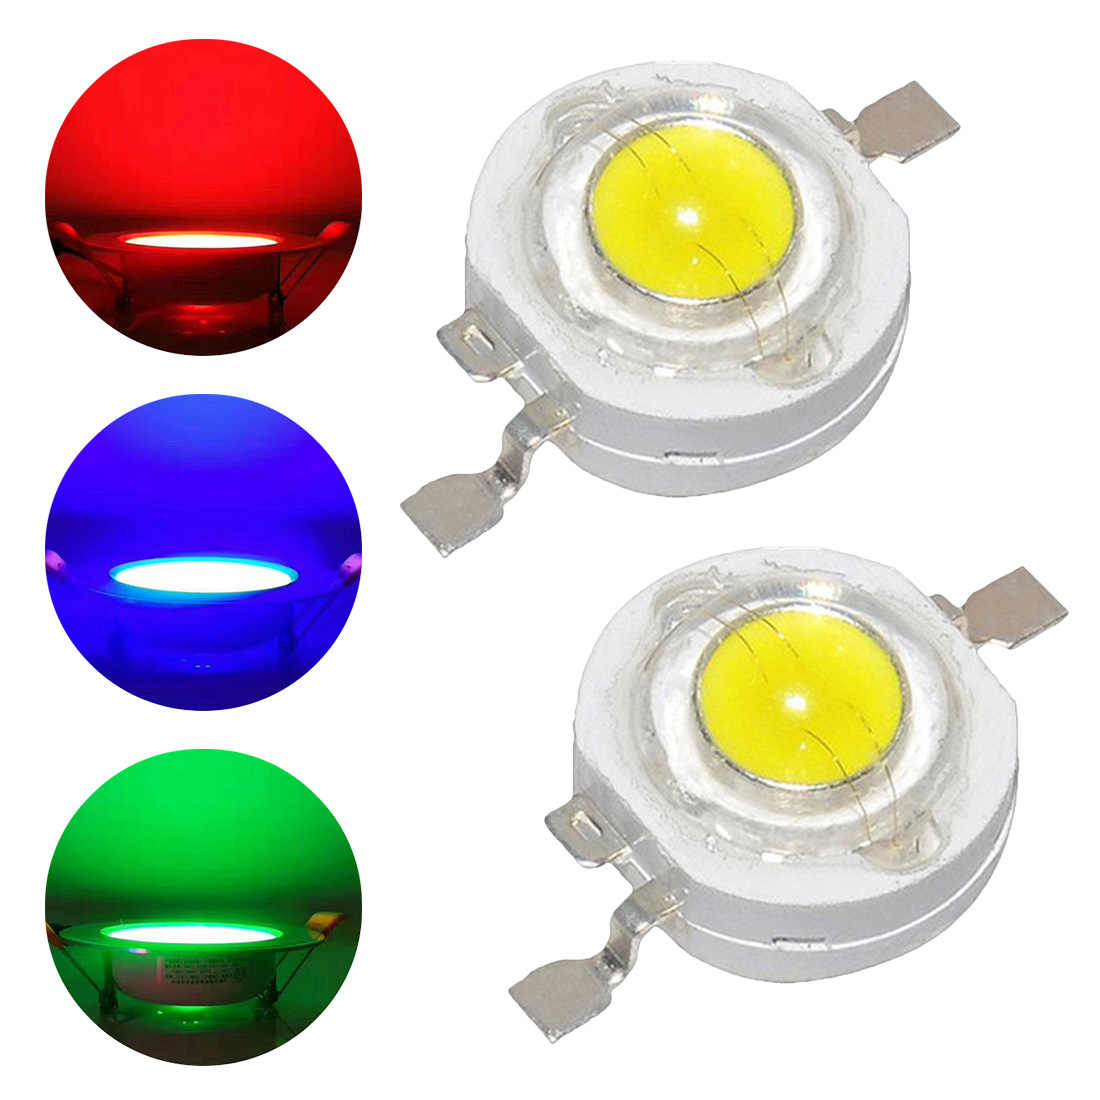 1Pc 1W 3W Spot light LED lamp Real Full Watt High Power Bulb Diodes LEDs Chip For 3W - 18W Downlight